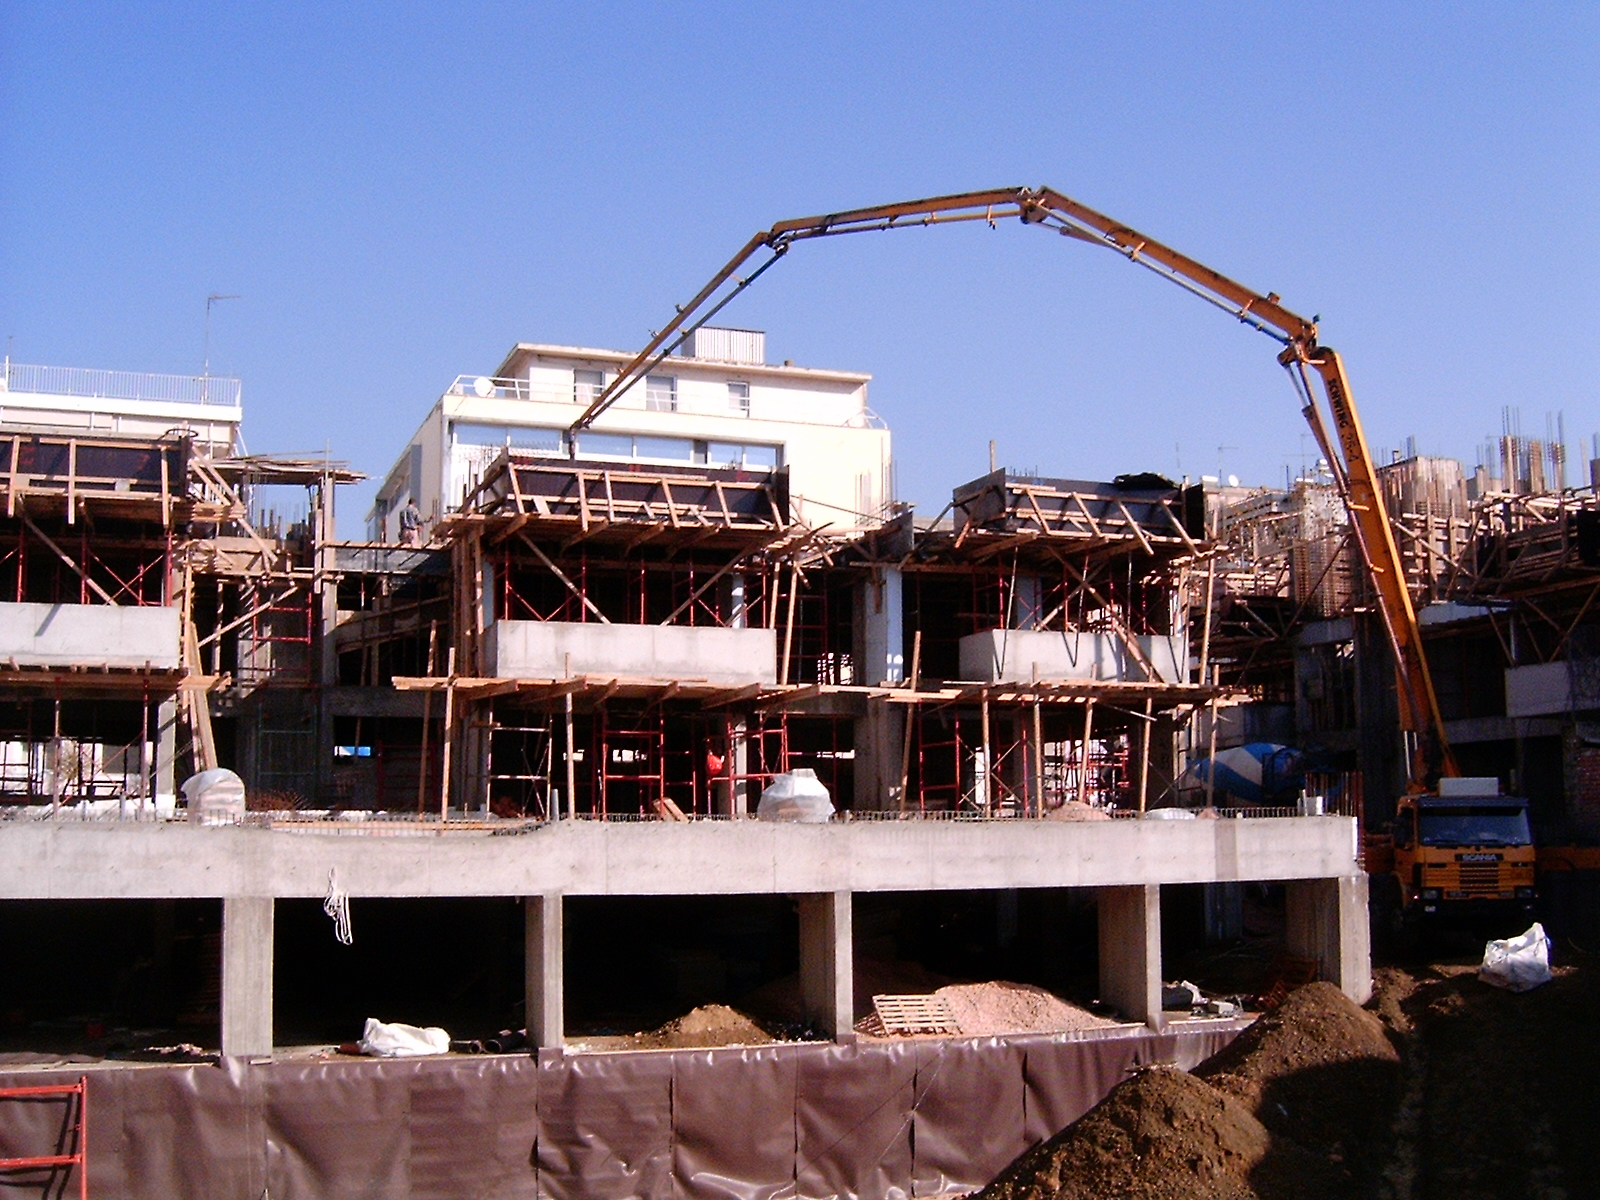 General view A & B - concreting